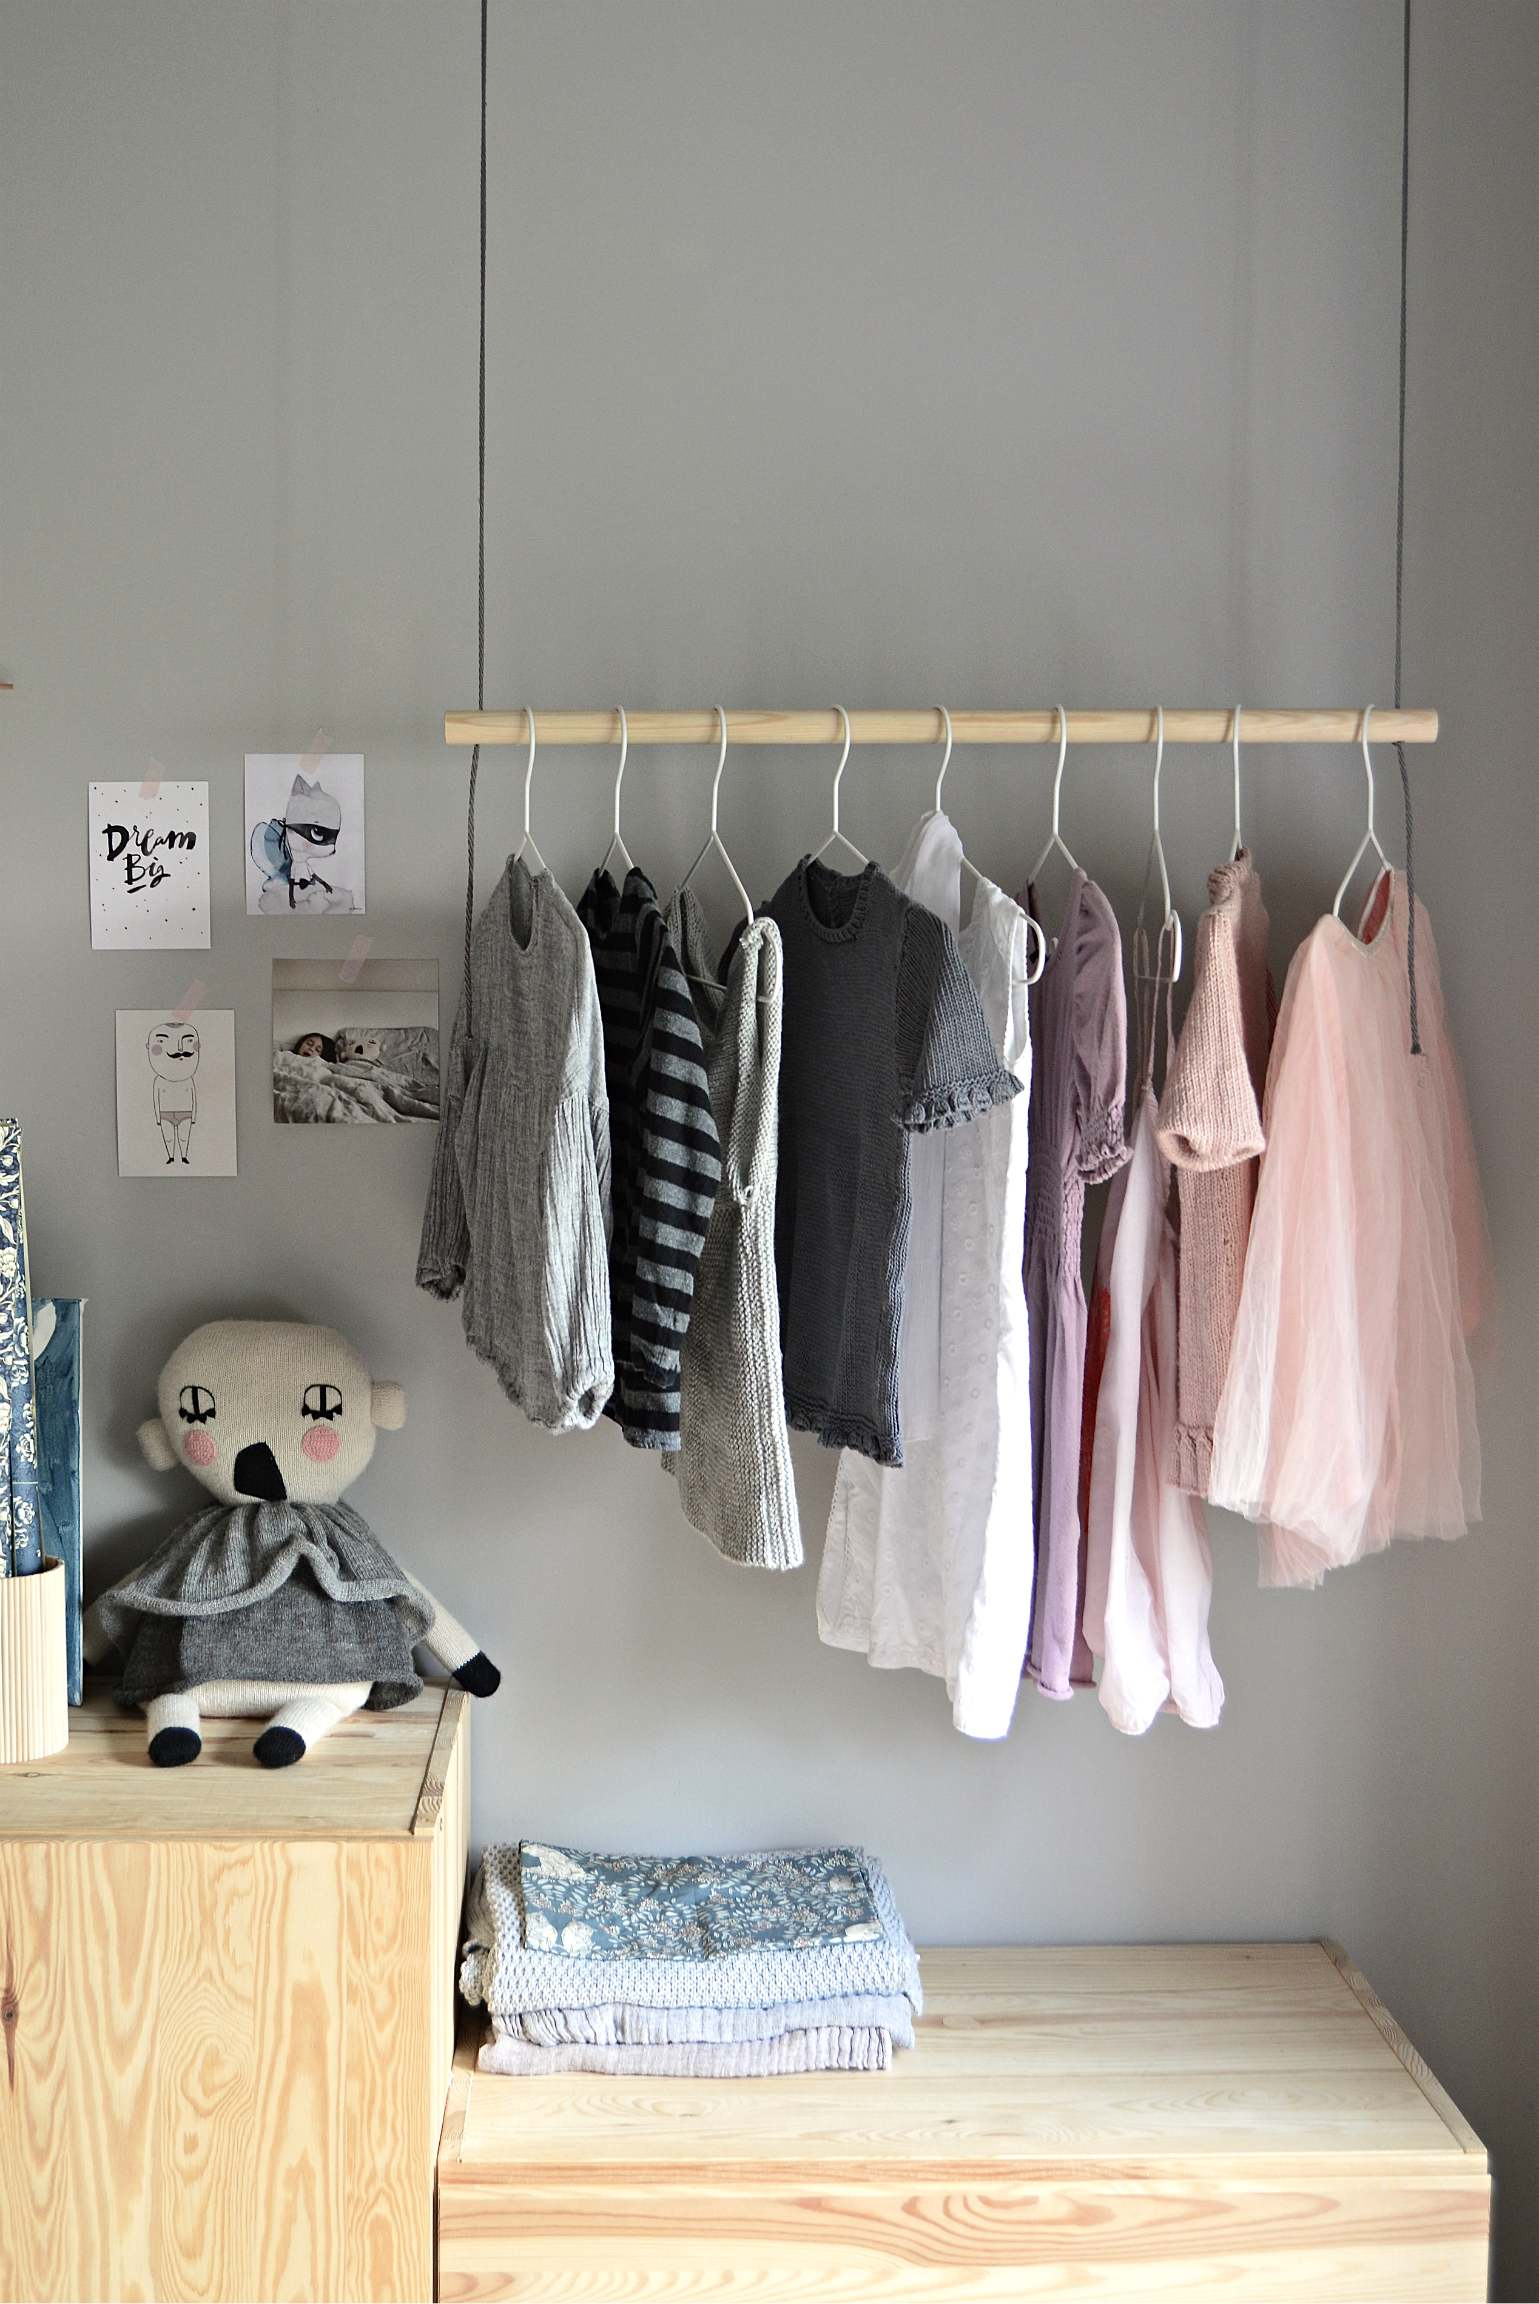 Hang On With This Diy Hanging Clothes Rack Diy Home Decor Your